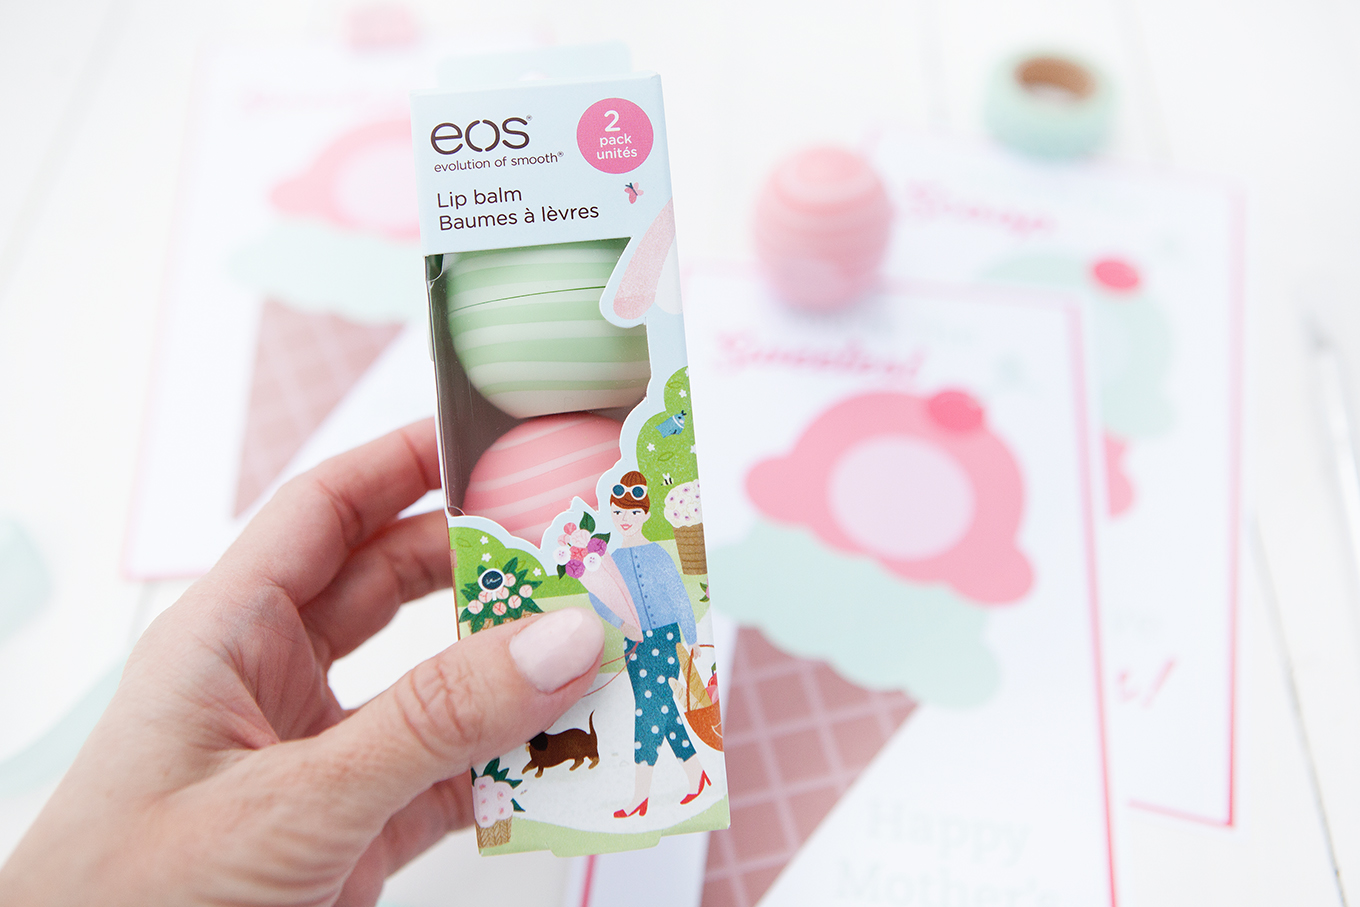 Mother's Day will be here before you know it – celebrate the special mom in your life with a simple card and her favorite EOS lip balm!